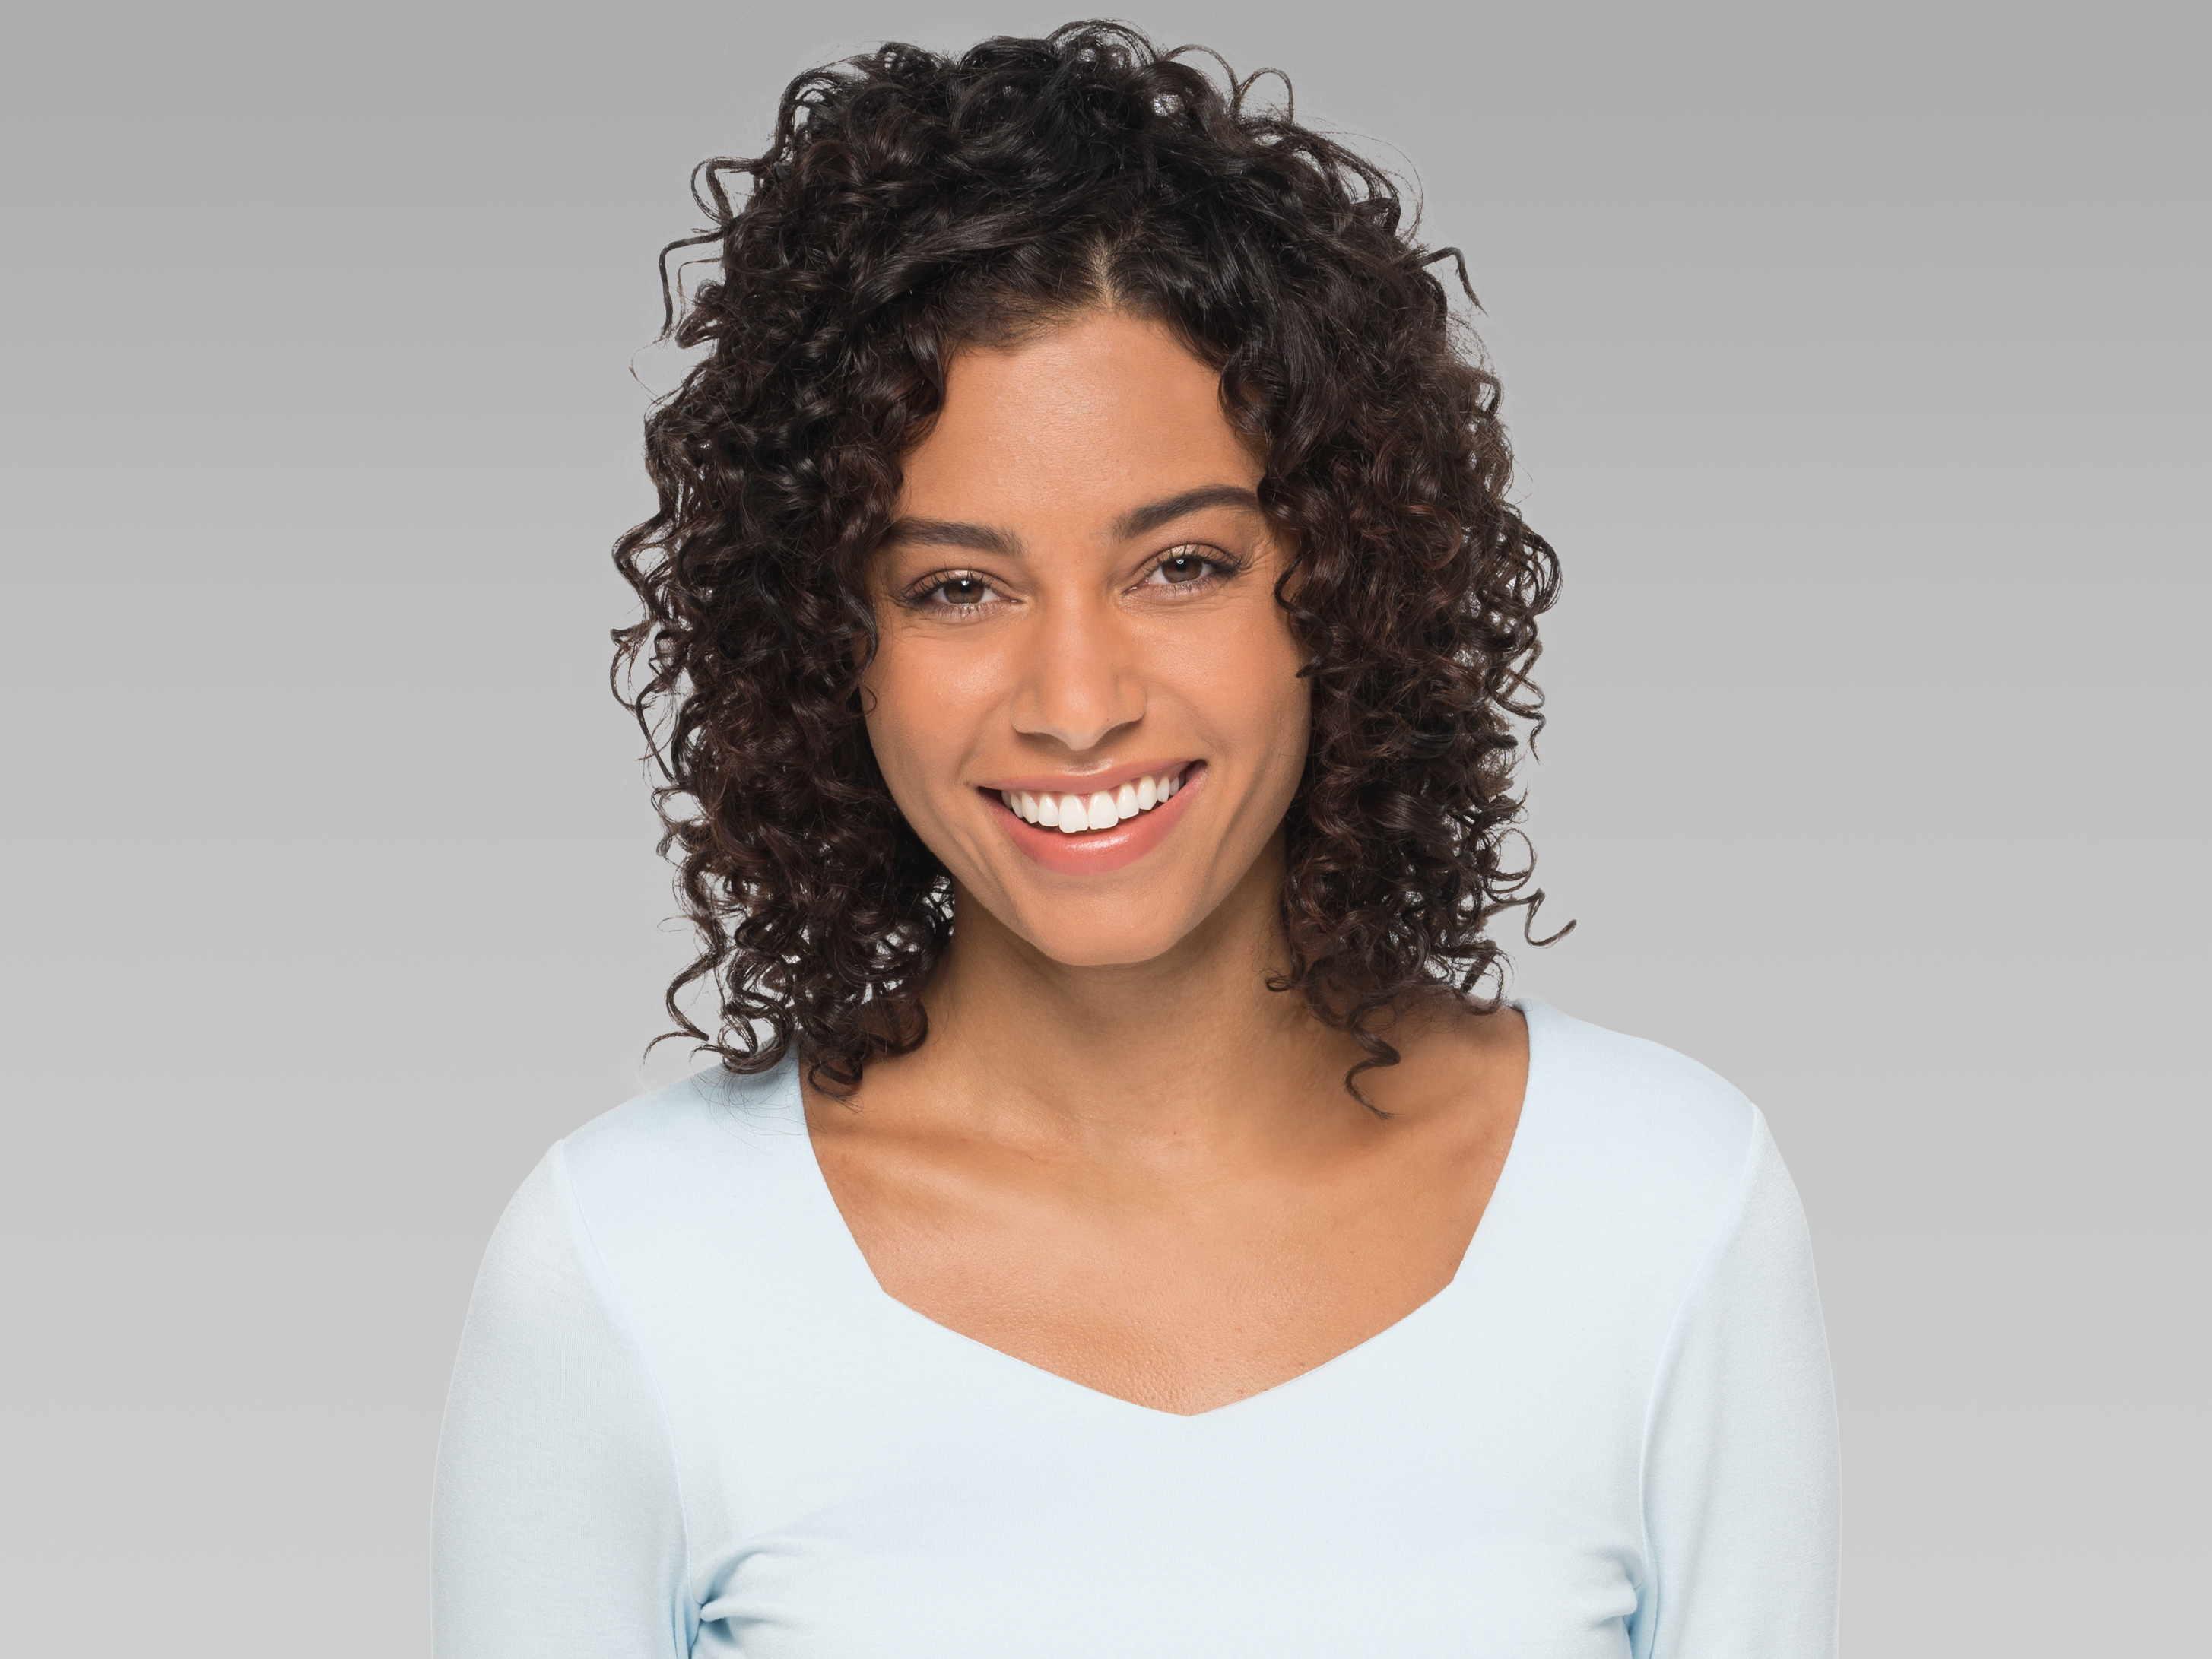 style hair curly layers with curls s hairstyles supercuts 5132 | supercuts blaine hero hairstyles long layers with curls front 4x3